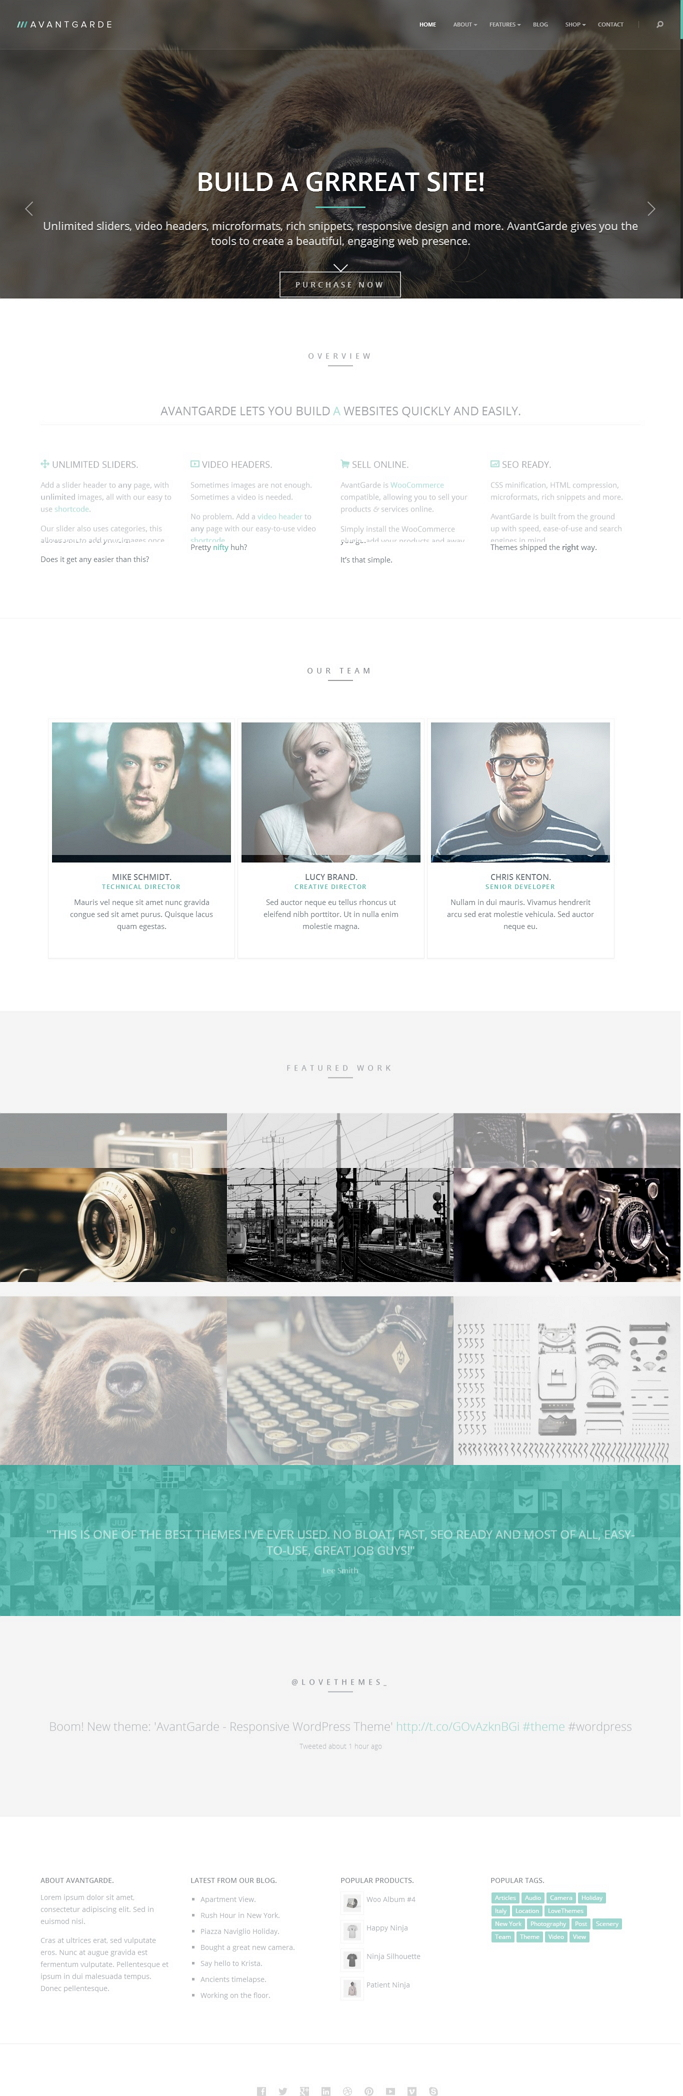 AvantGarde theme for WordPress is an innovative, multipurpose WooCommerce compatible theme, allo ...